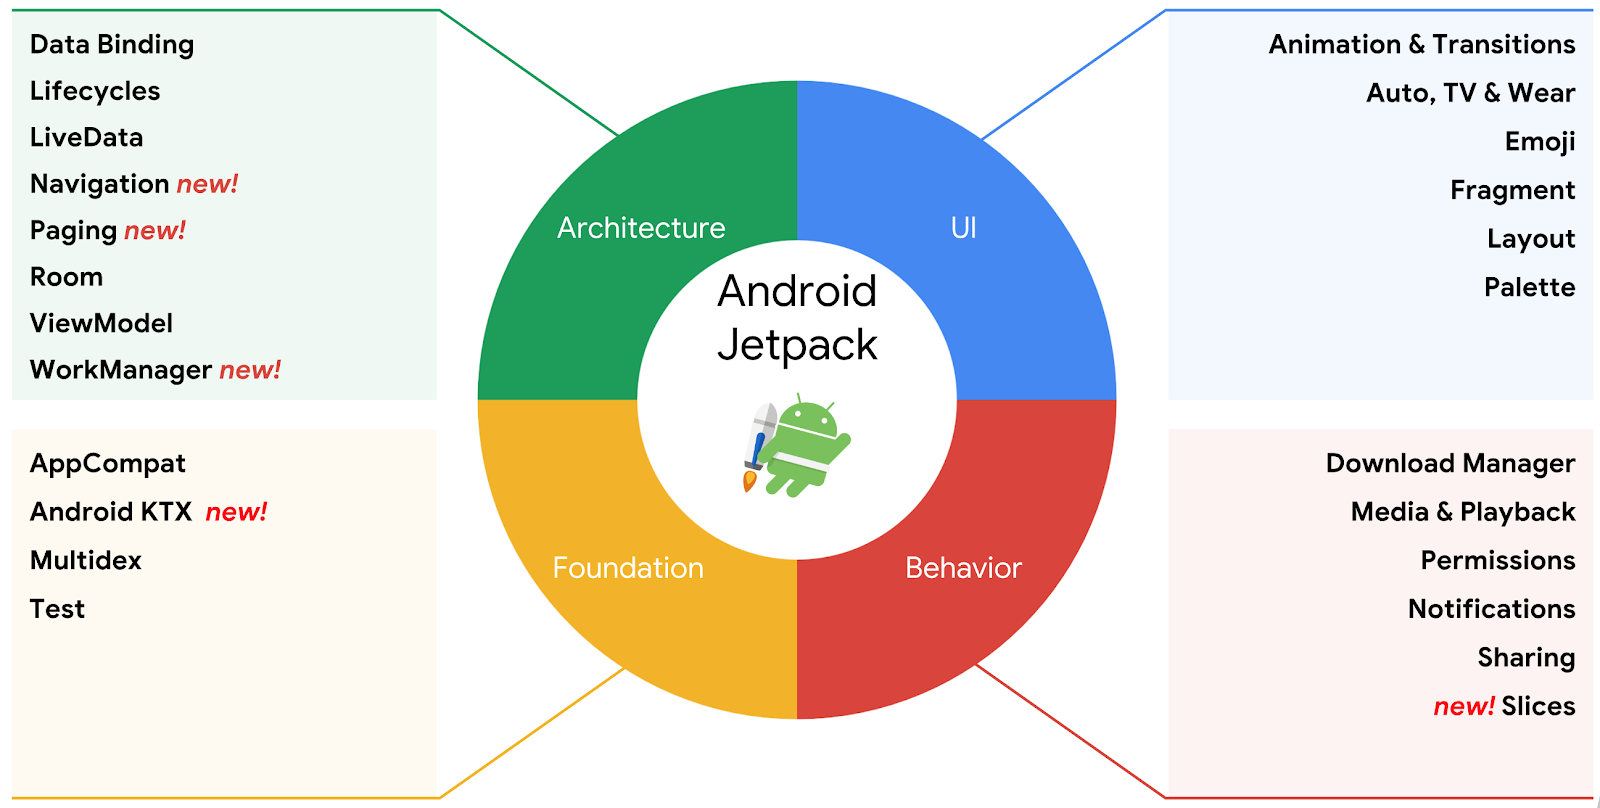 Android Jetpack Suite of Tools — Image Credits: [d.android.com](http://d.android.com)